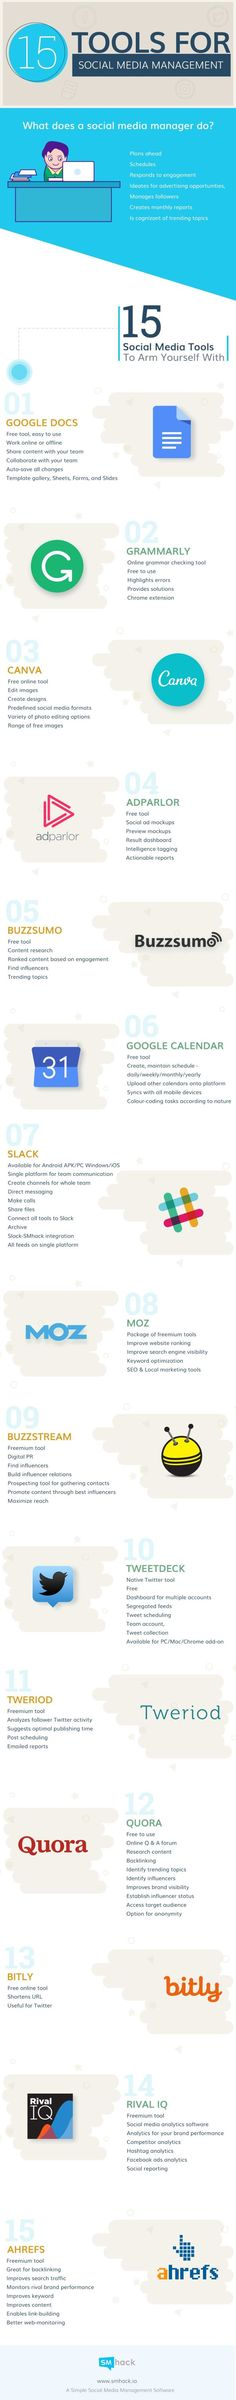 Infographic: 15 tools to simplify social media managers' jobs -- These maestros of the digital ecosystem have their hands full, so a little help can go a long way. Try these handy assistants for maintaining sanity and boosting productivity. Facebook Marketing, Inbound Marketing, Marketing Tools, Marketing Digital, Online Marketing, Social Media Marketing, Content Marketing, Marketing Strategies, Business Marketing